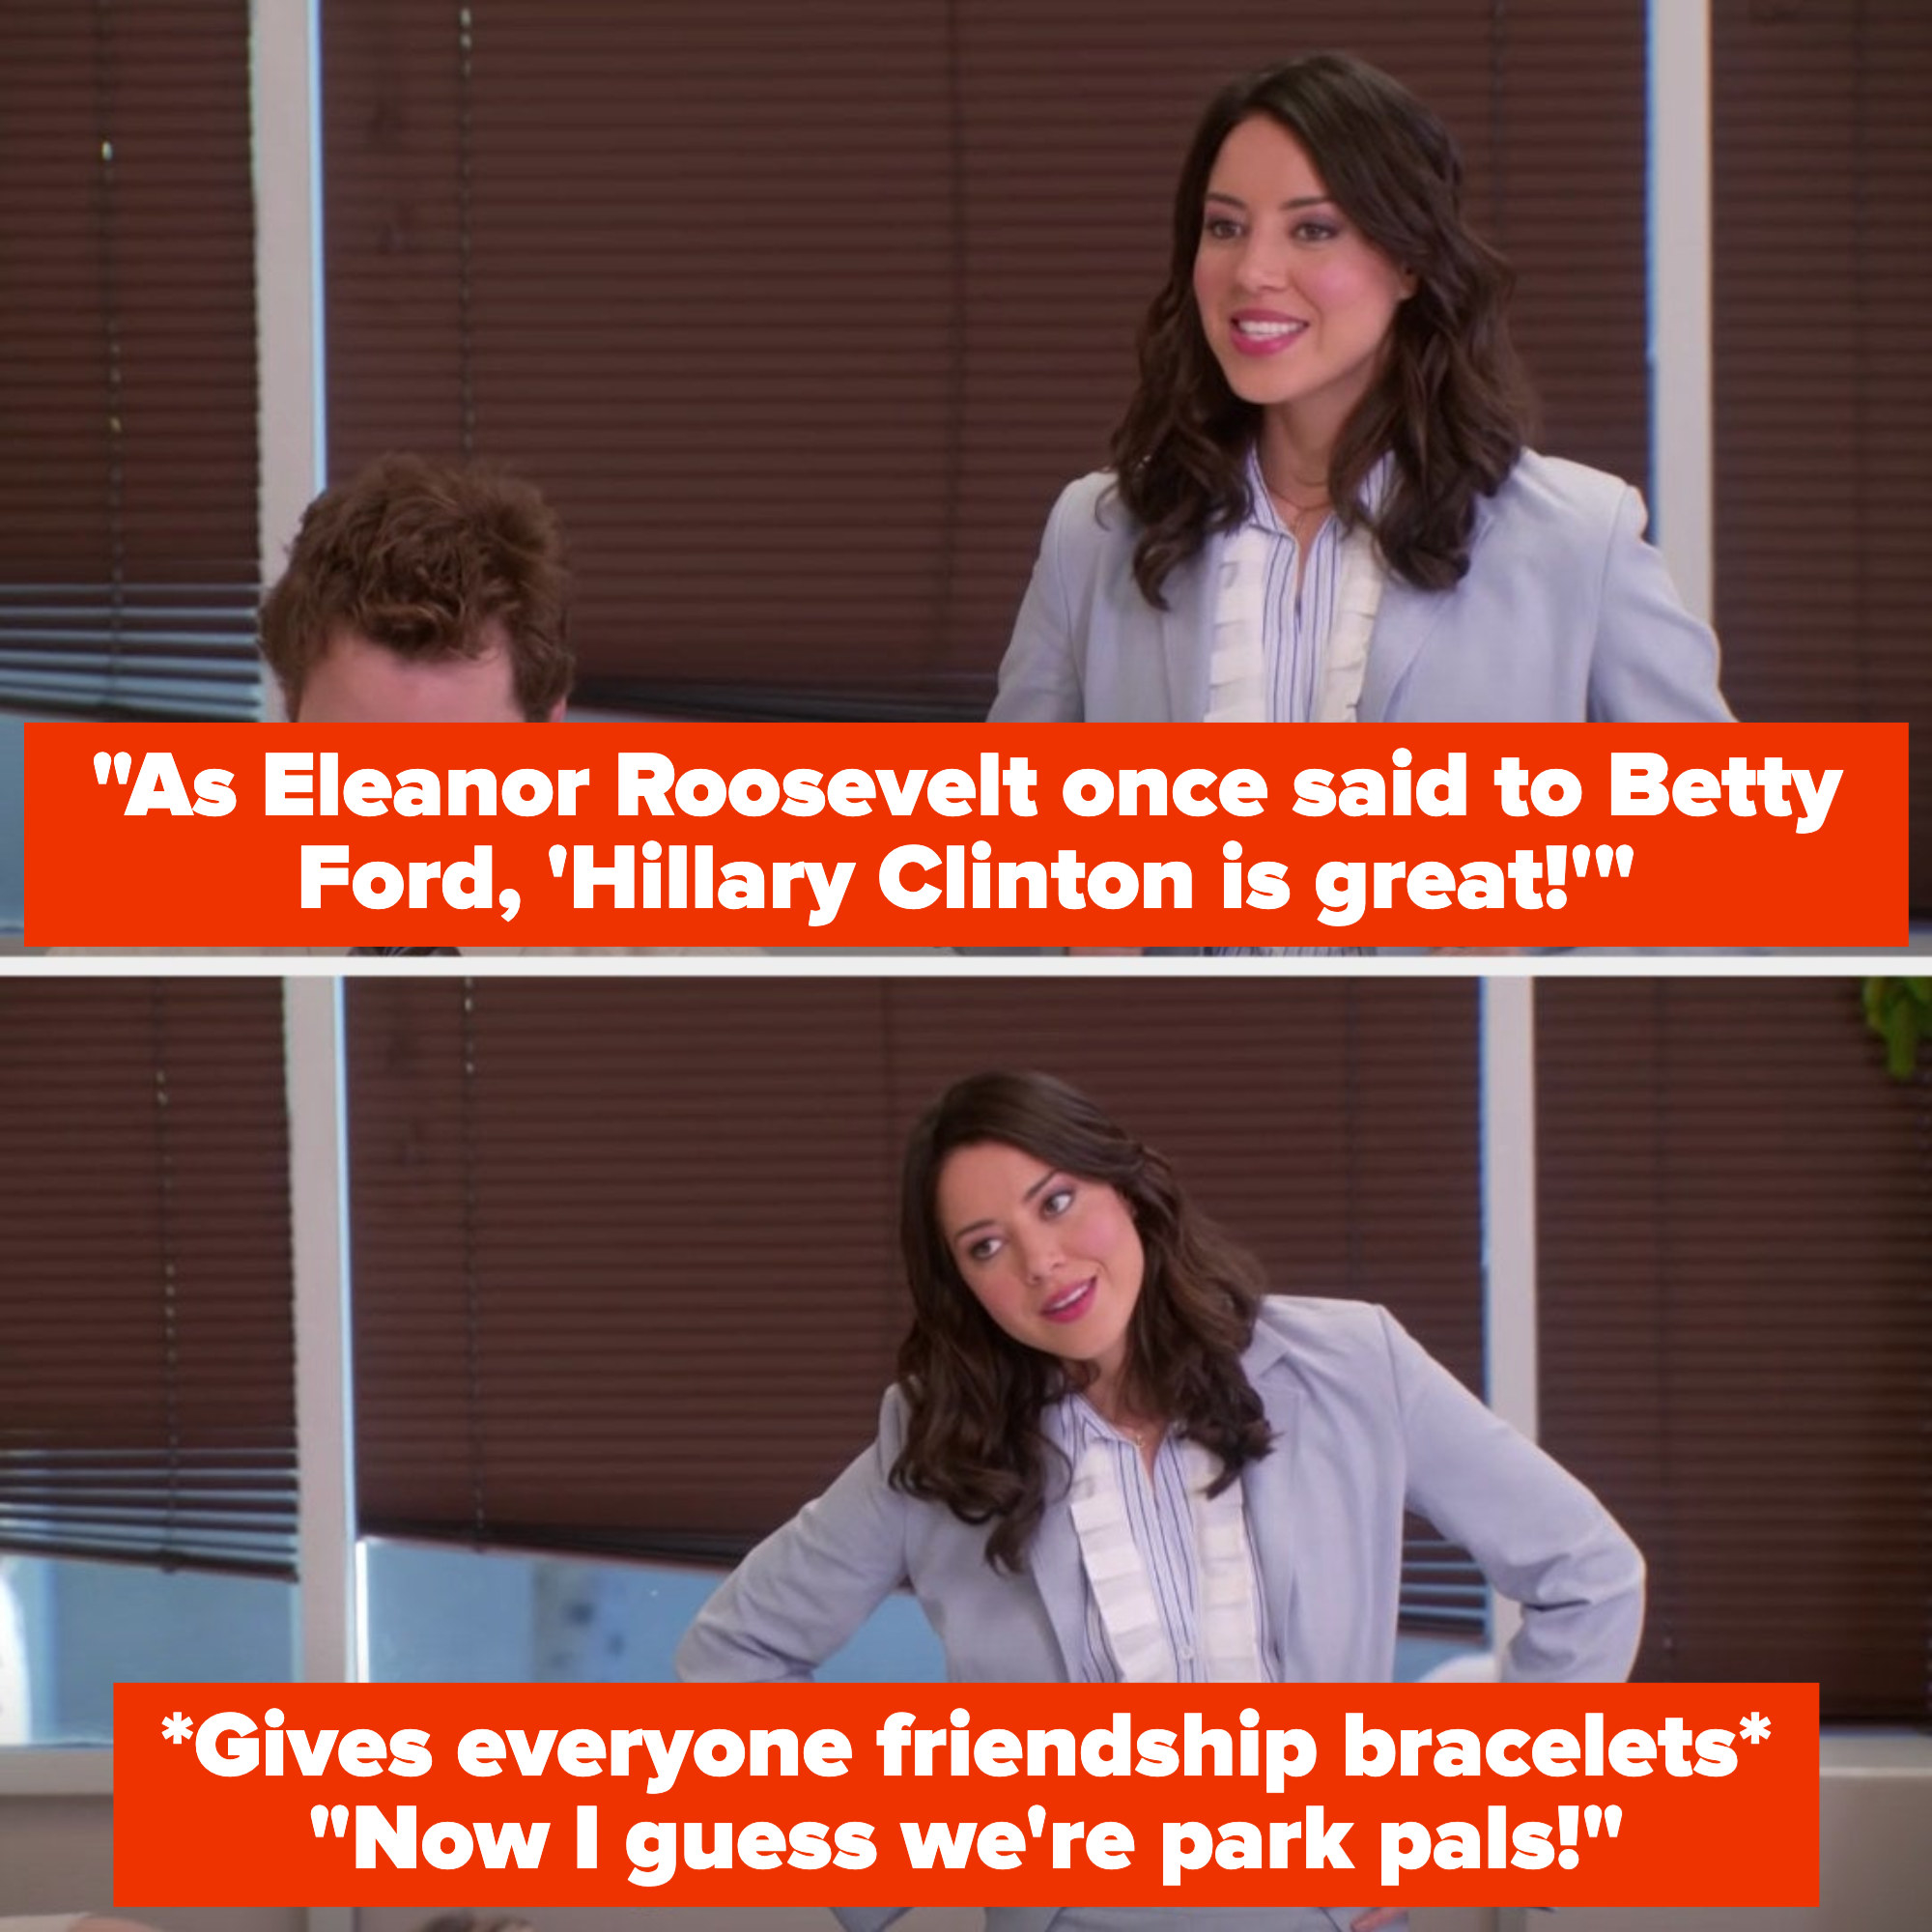 """dressed in one of Leslie's pantsuits, April says, """"As Eleanor Roosevelt once said to Betty Ford, Hillary Clinton is great!"""" then gives everyone friendship bracelets and says """"Now I guess we're park pals!"""""""